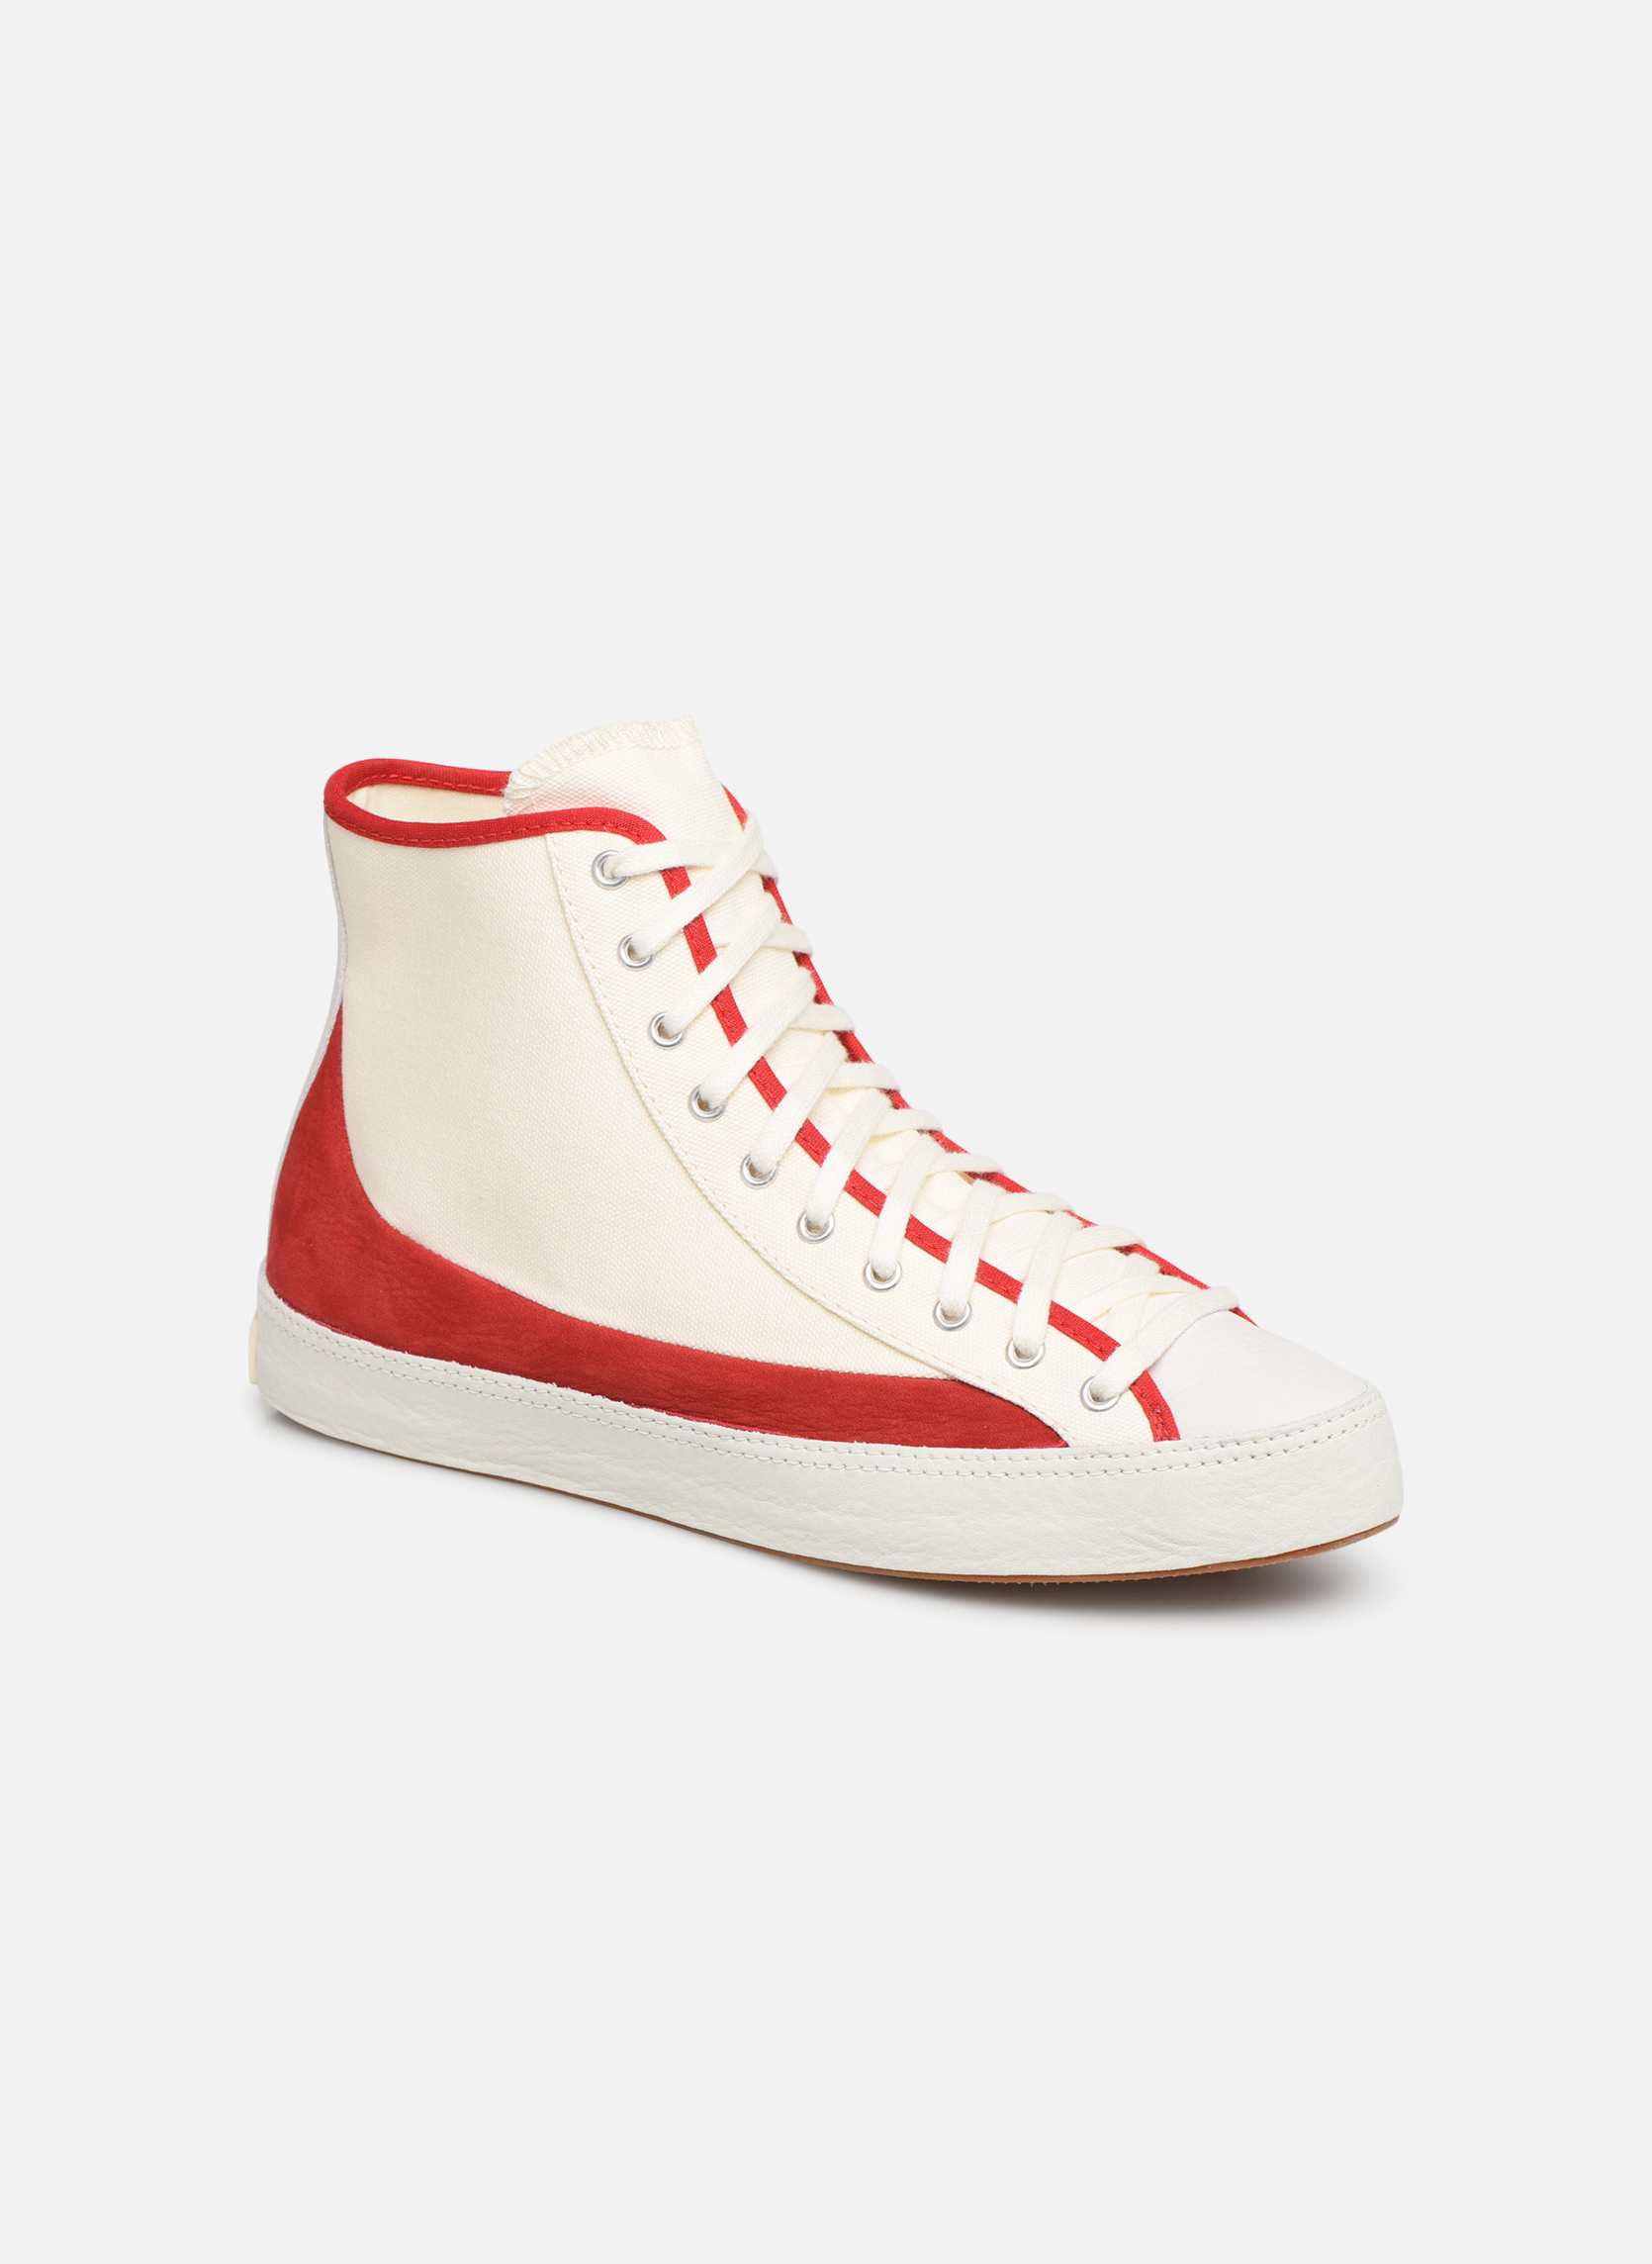 Sneakers Converse Sasha Bloom in Season Foundation Hi by ConverseConverseWitPaar schoenen - Sneakers88875651671241Textiel